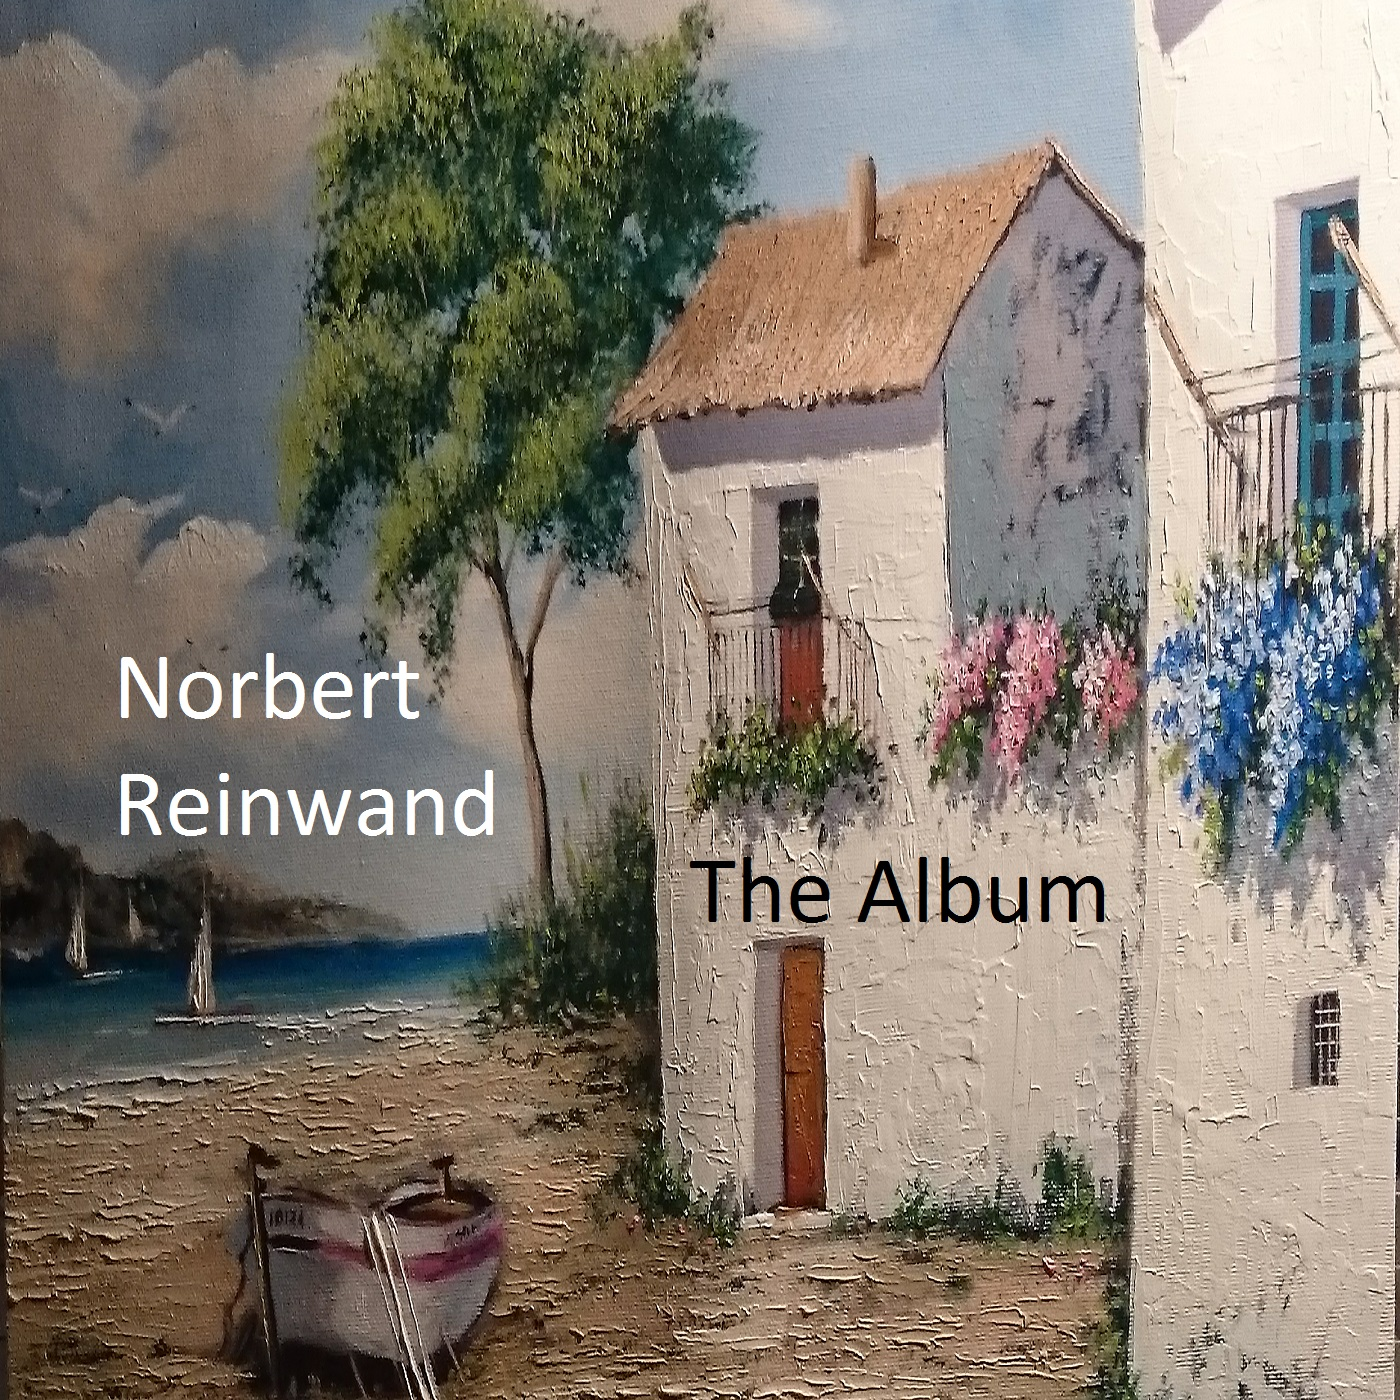 Norbert Reinwand - The Album